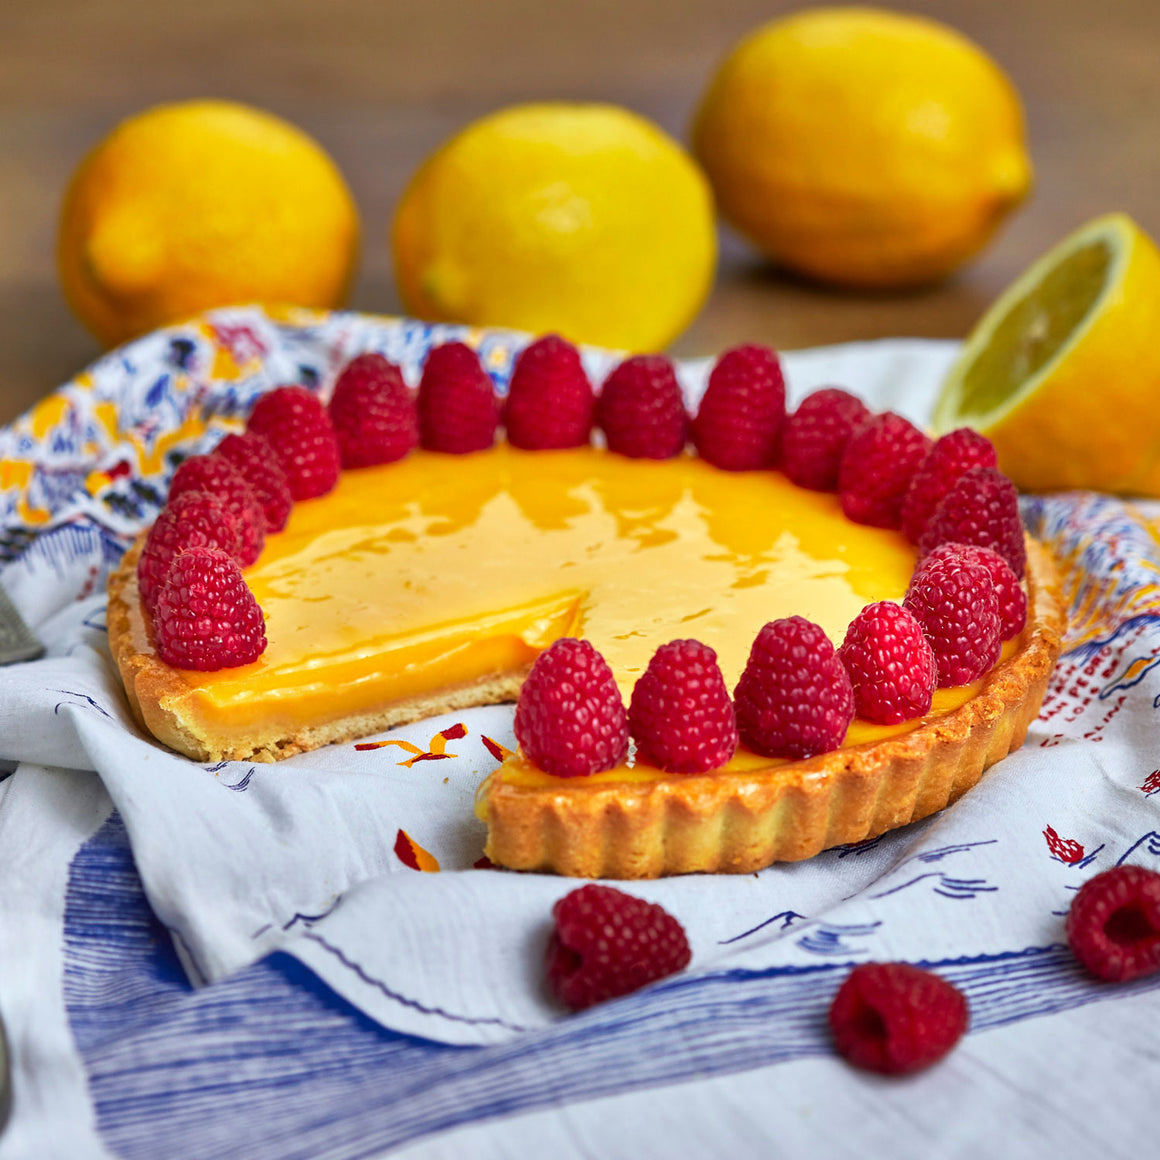 Large Citrus Tart with Raspberries